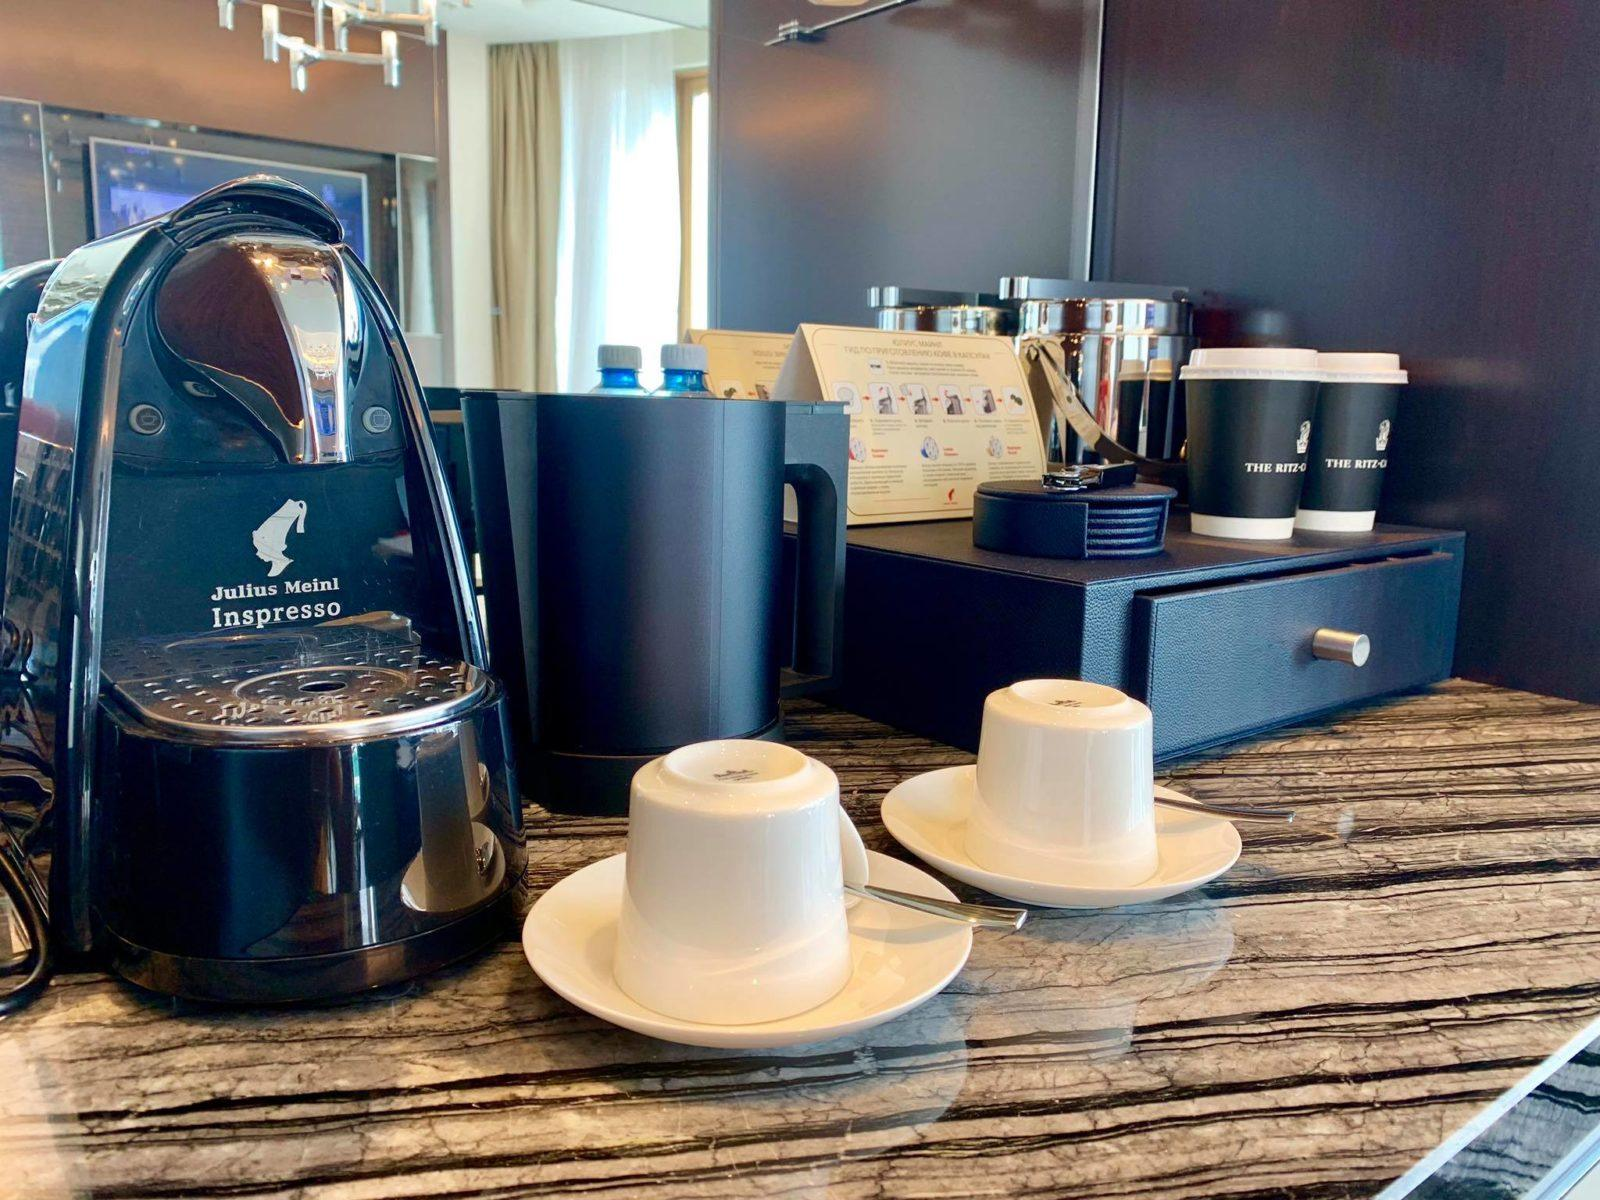 My Experience Staying at The Ritz Carlton Astana9